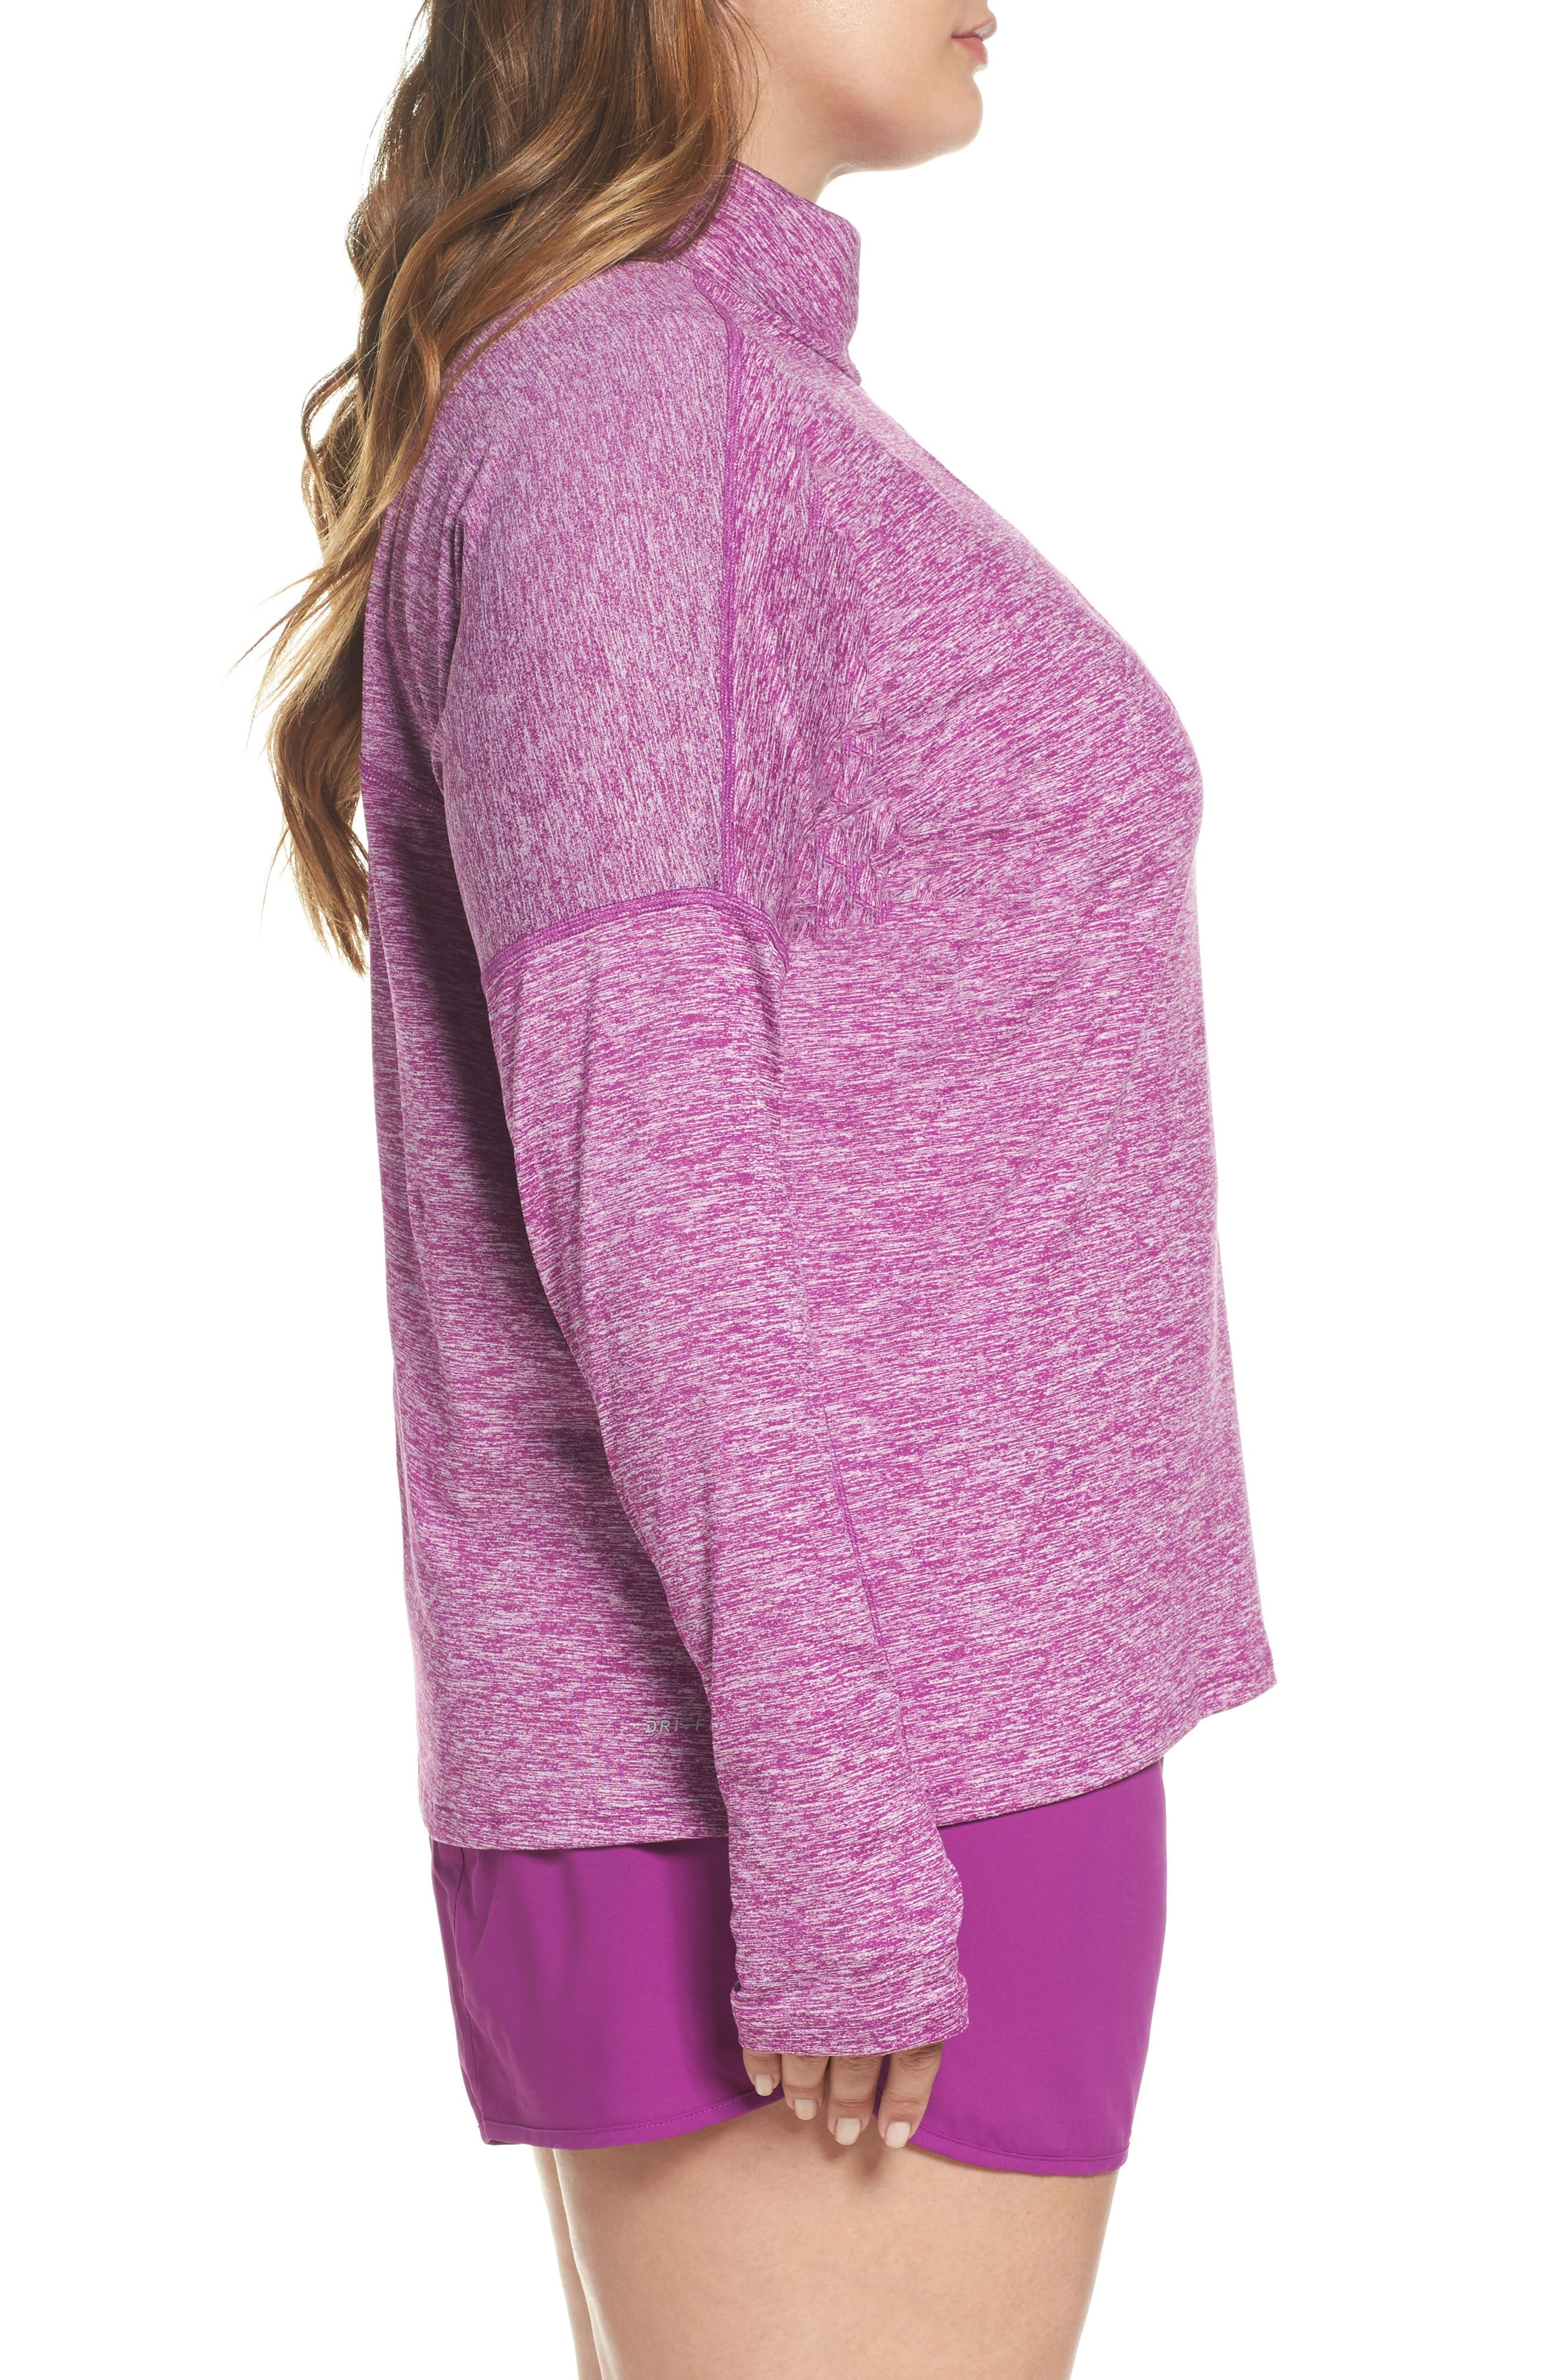 Dry Element Half Zip Top,                             Alternate thumbnail 3, color,                             Bold Berry/ Heather